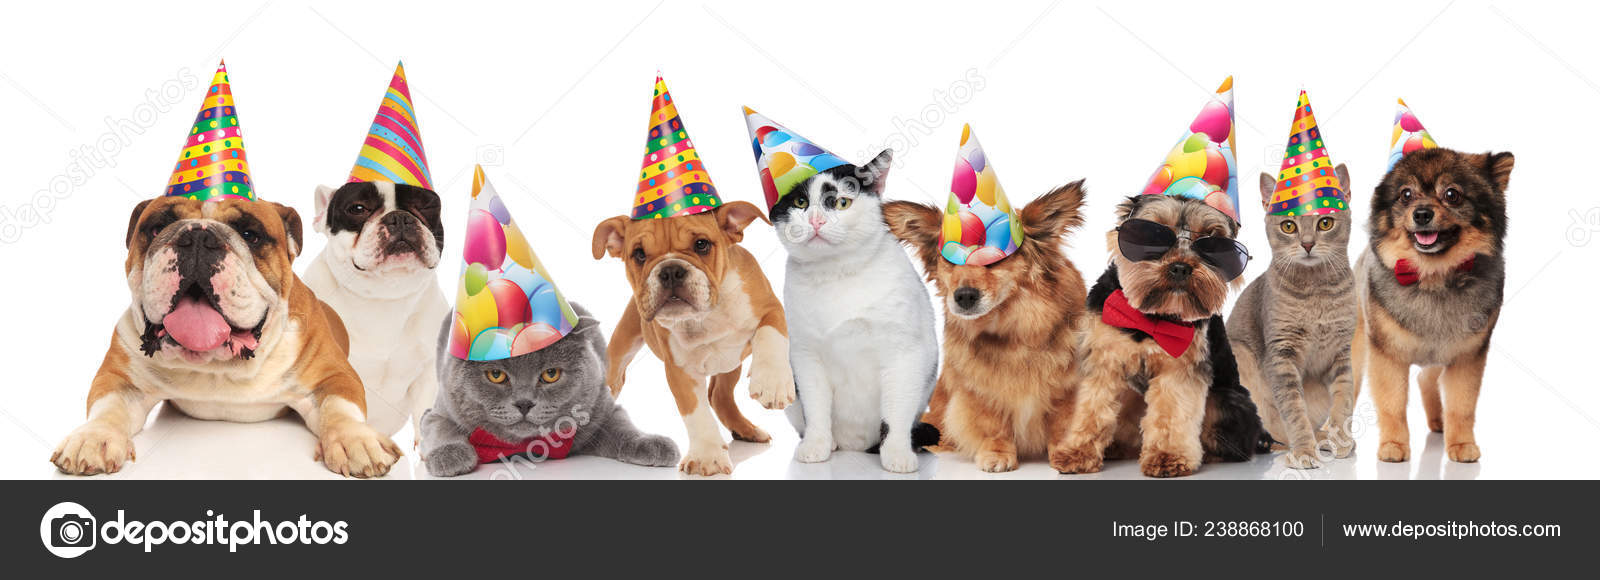 Adorable Cats And Dogs Wearing Colorful Birthday Hats Looking Funny While Standing Sitting Lying On White Background Stock Image